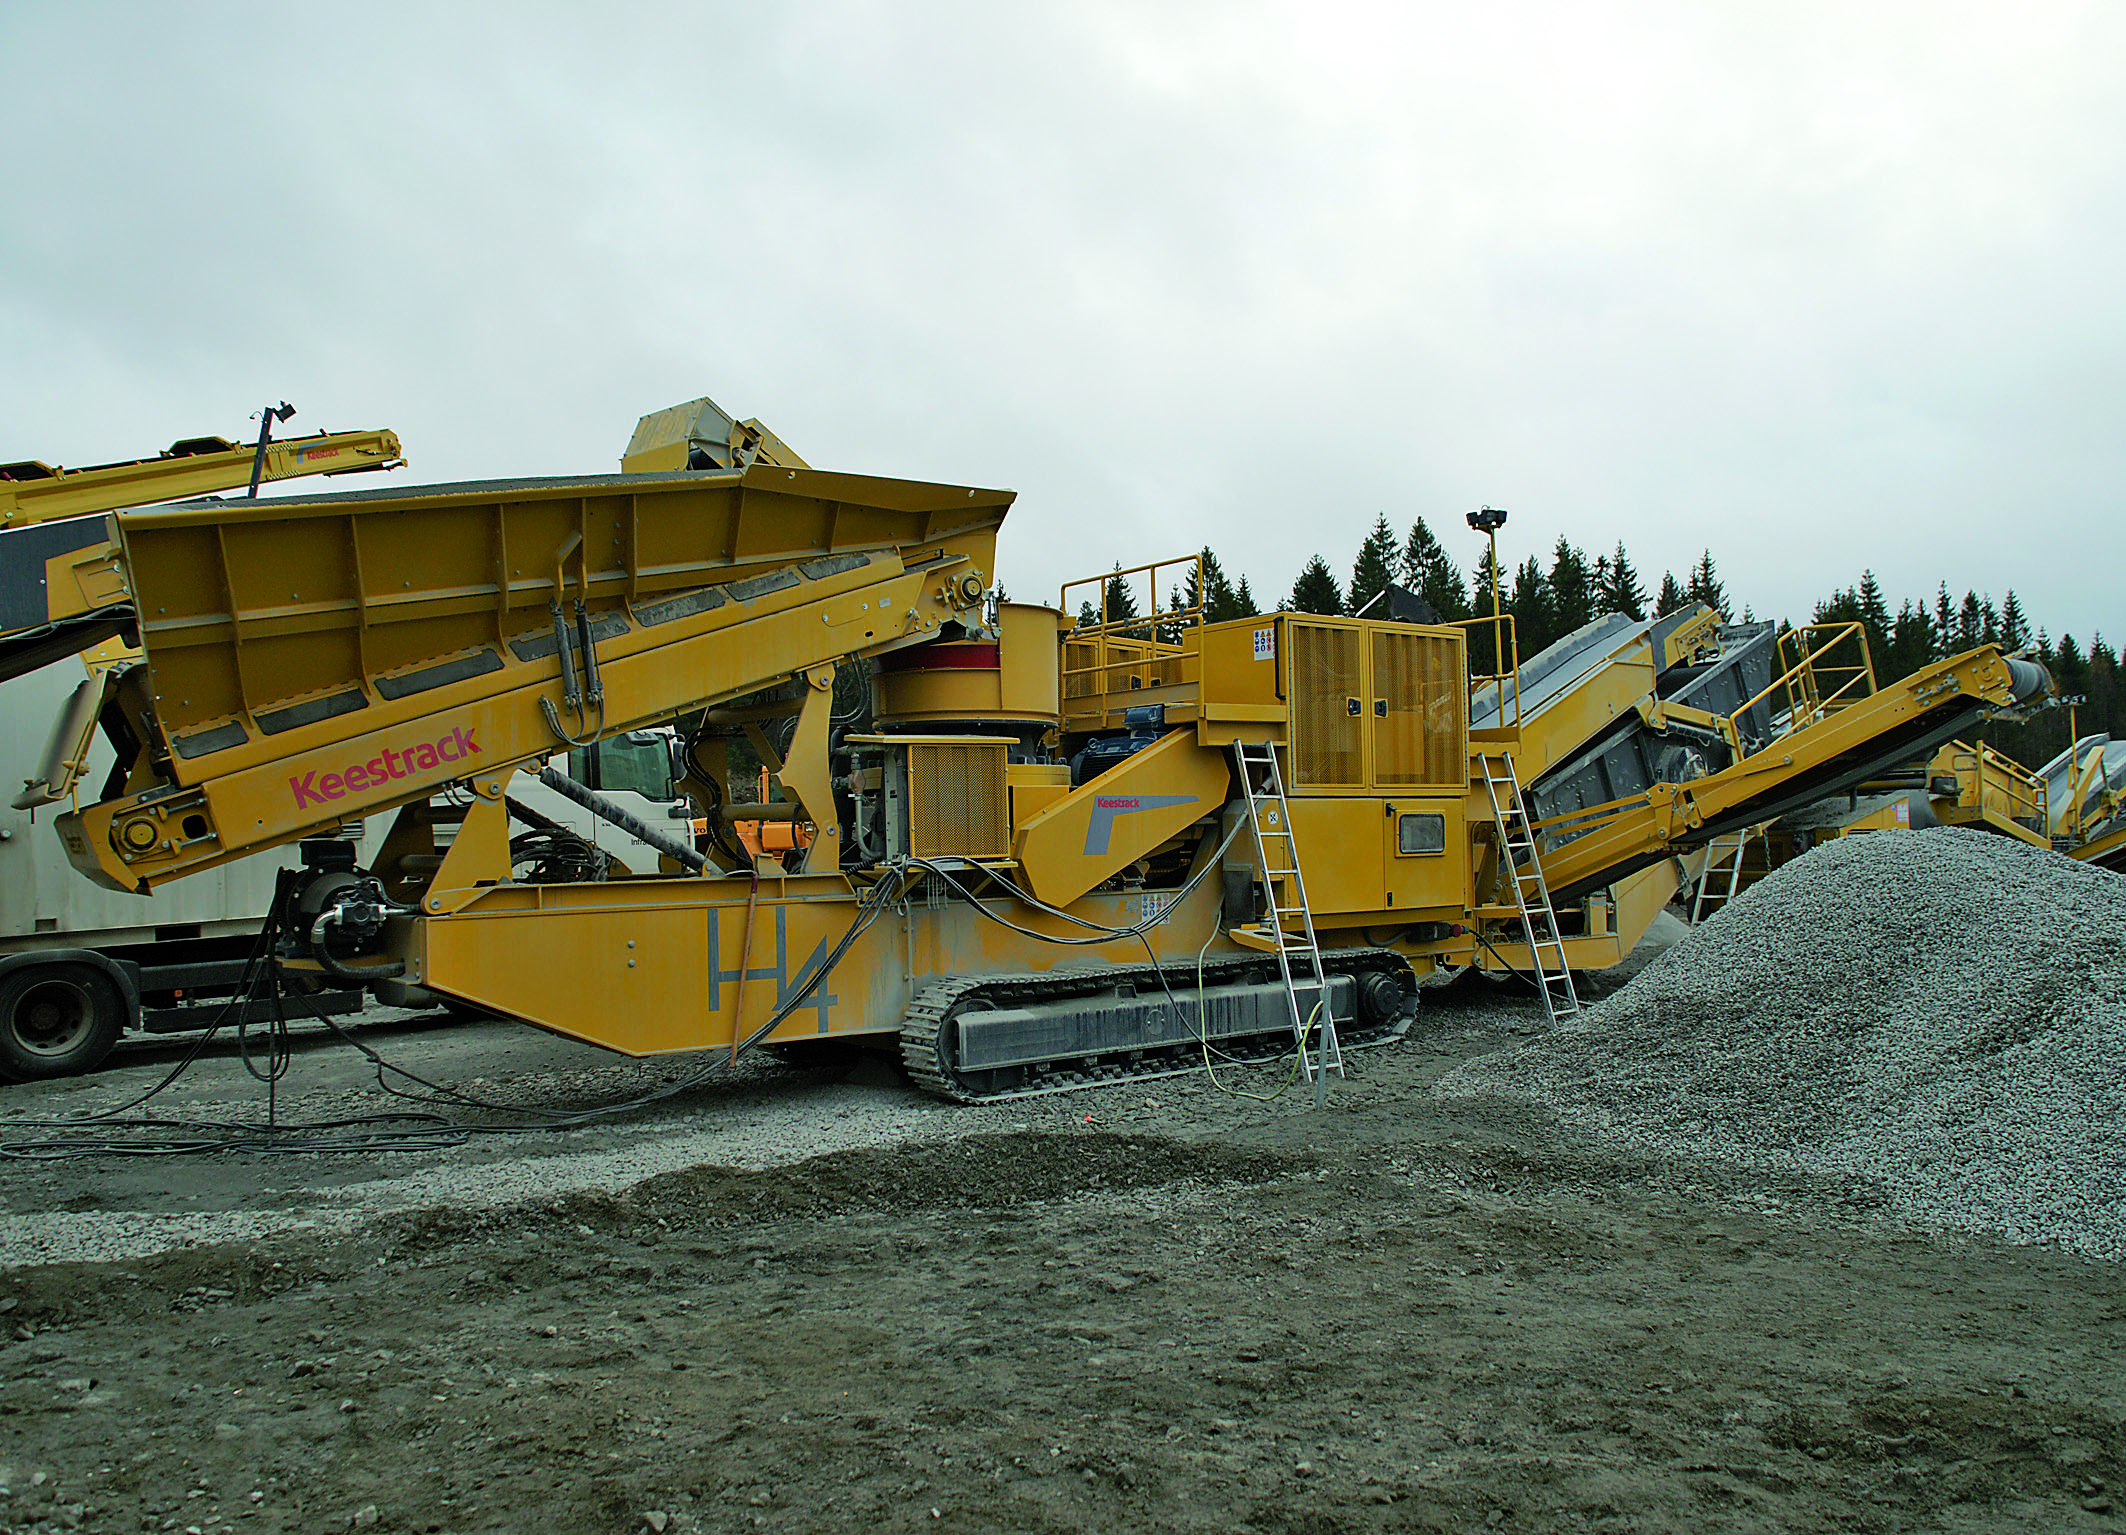 With only 50 tons transport weight featuring a pre-screen and a 3-deck secondary screen module the new H4e tracked cone crusher sets the industry standards in mobile processing of High Quality end products. (Photo: KEESTRACK)